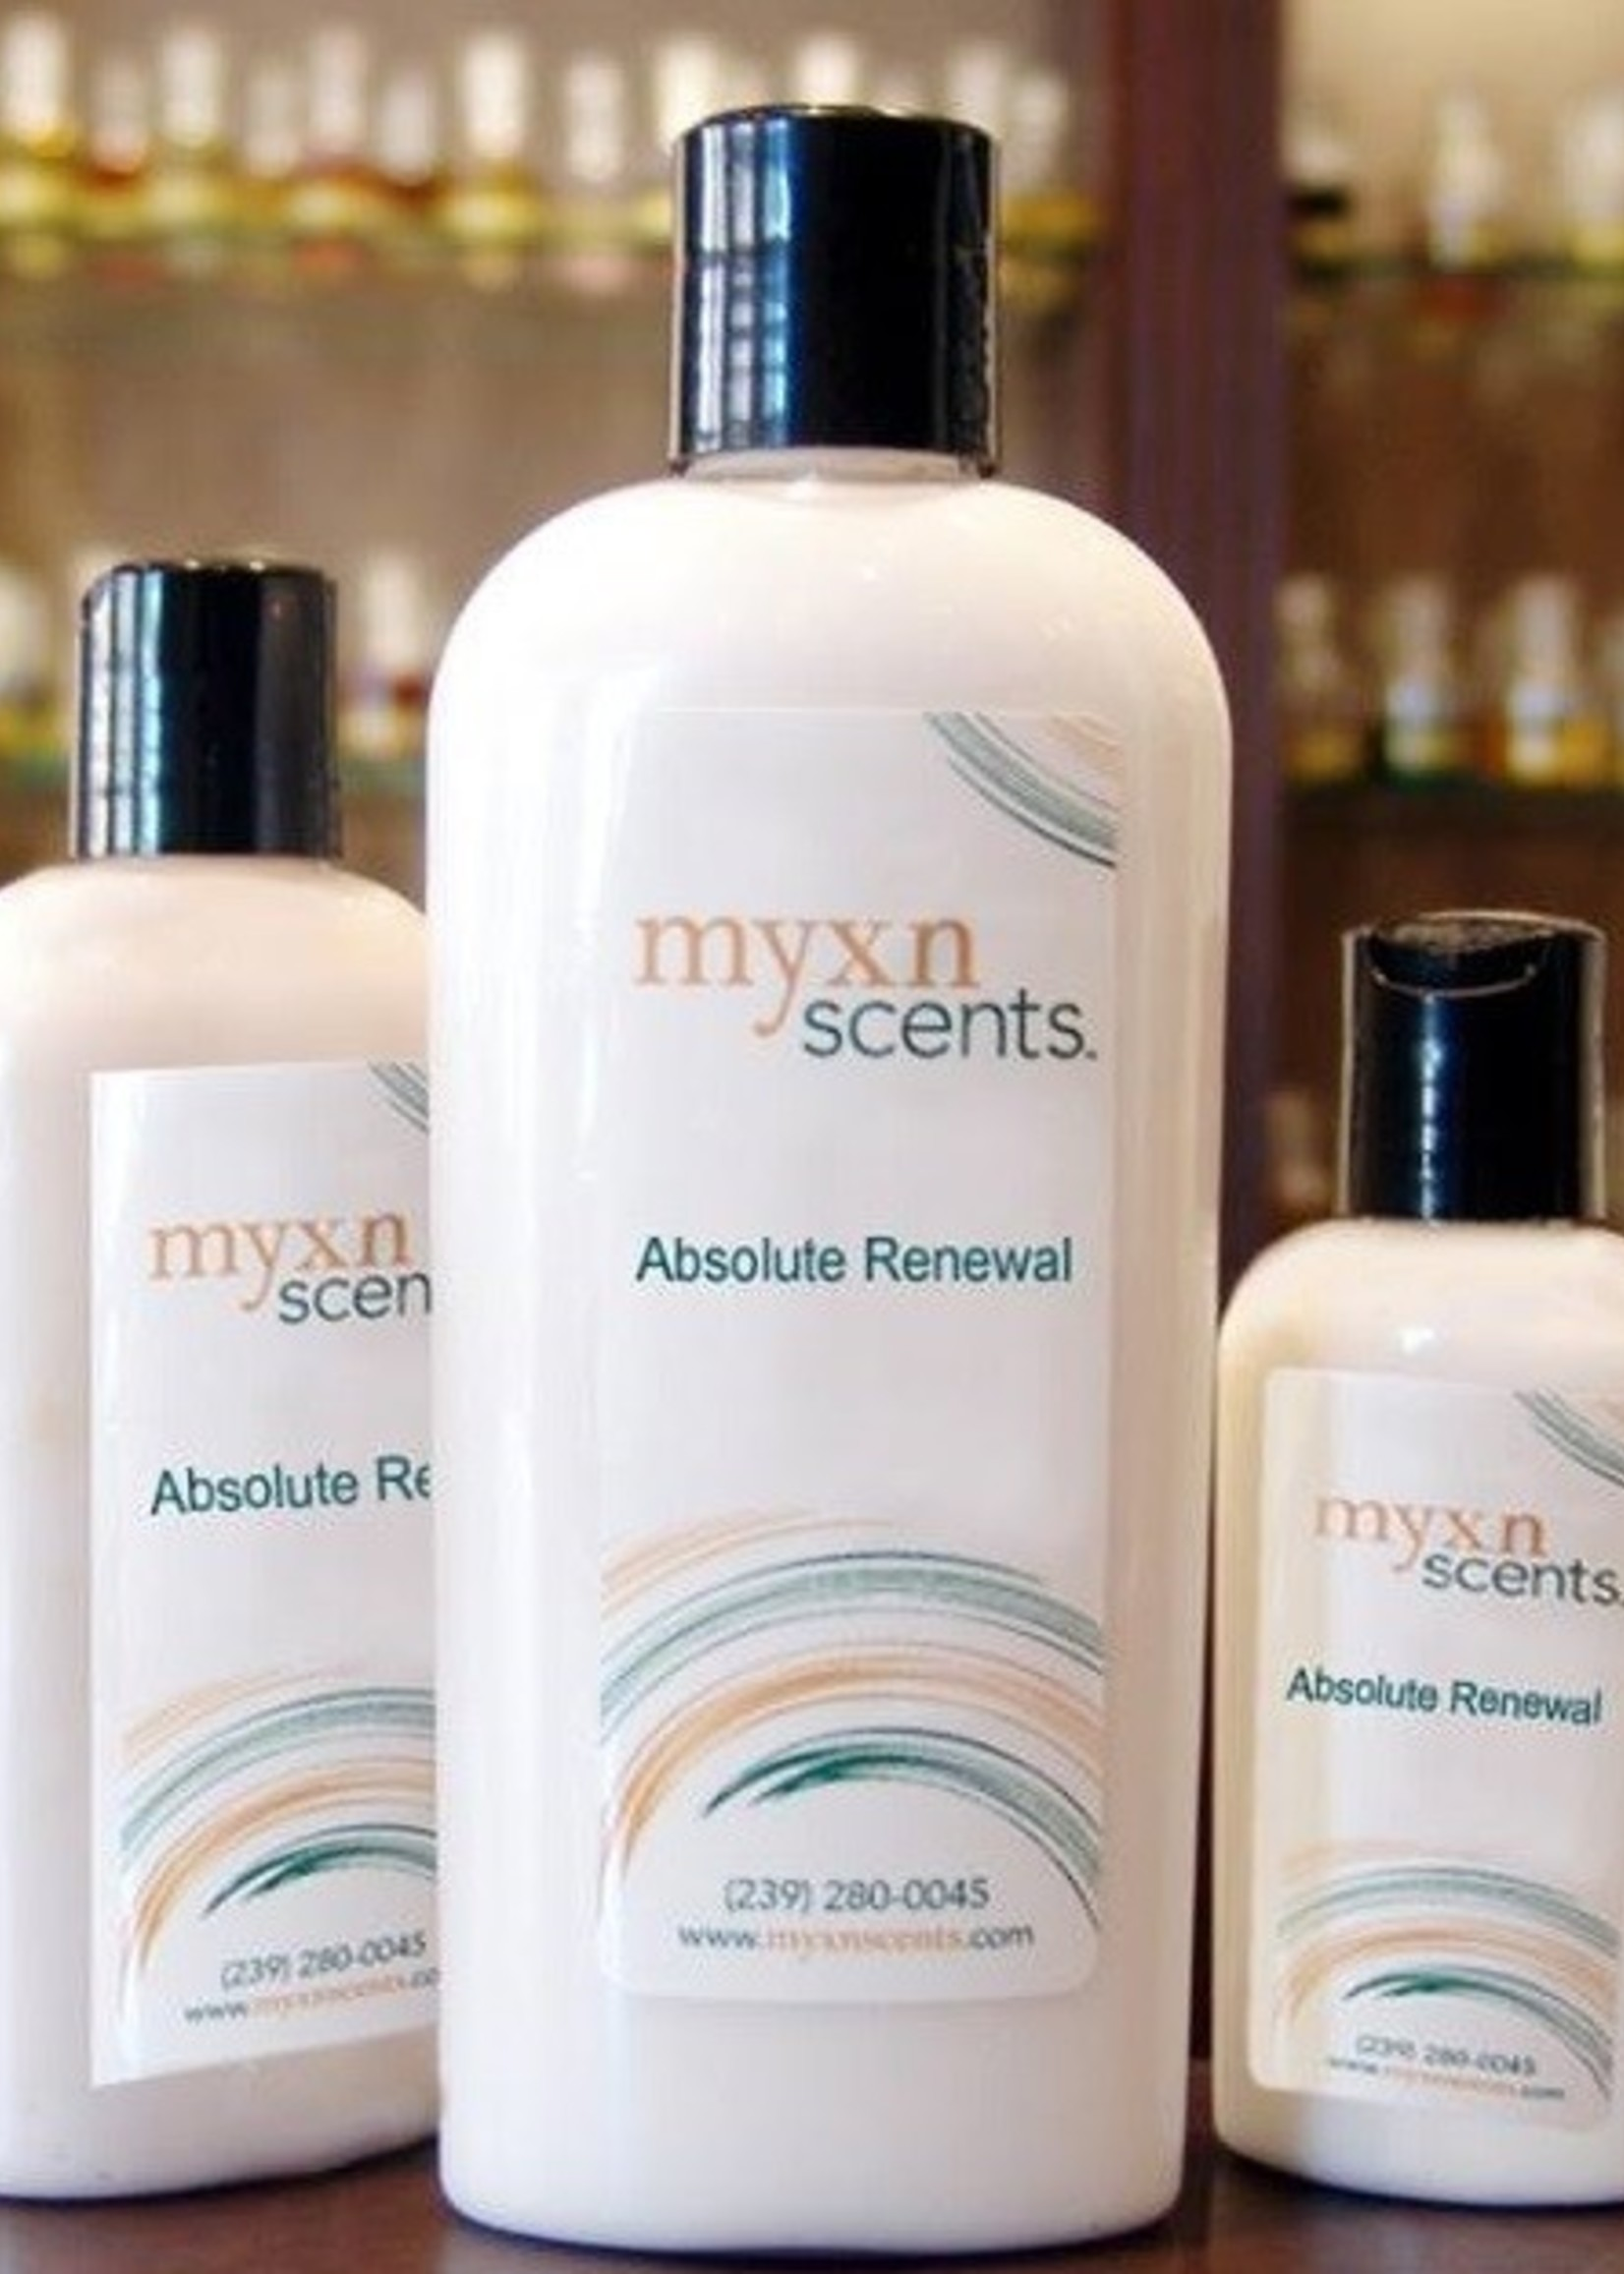 Absolute Renewal Lotion